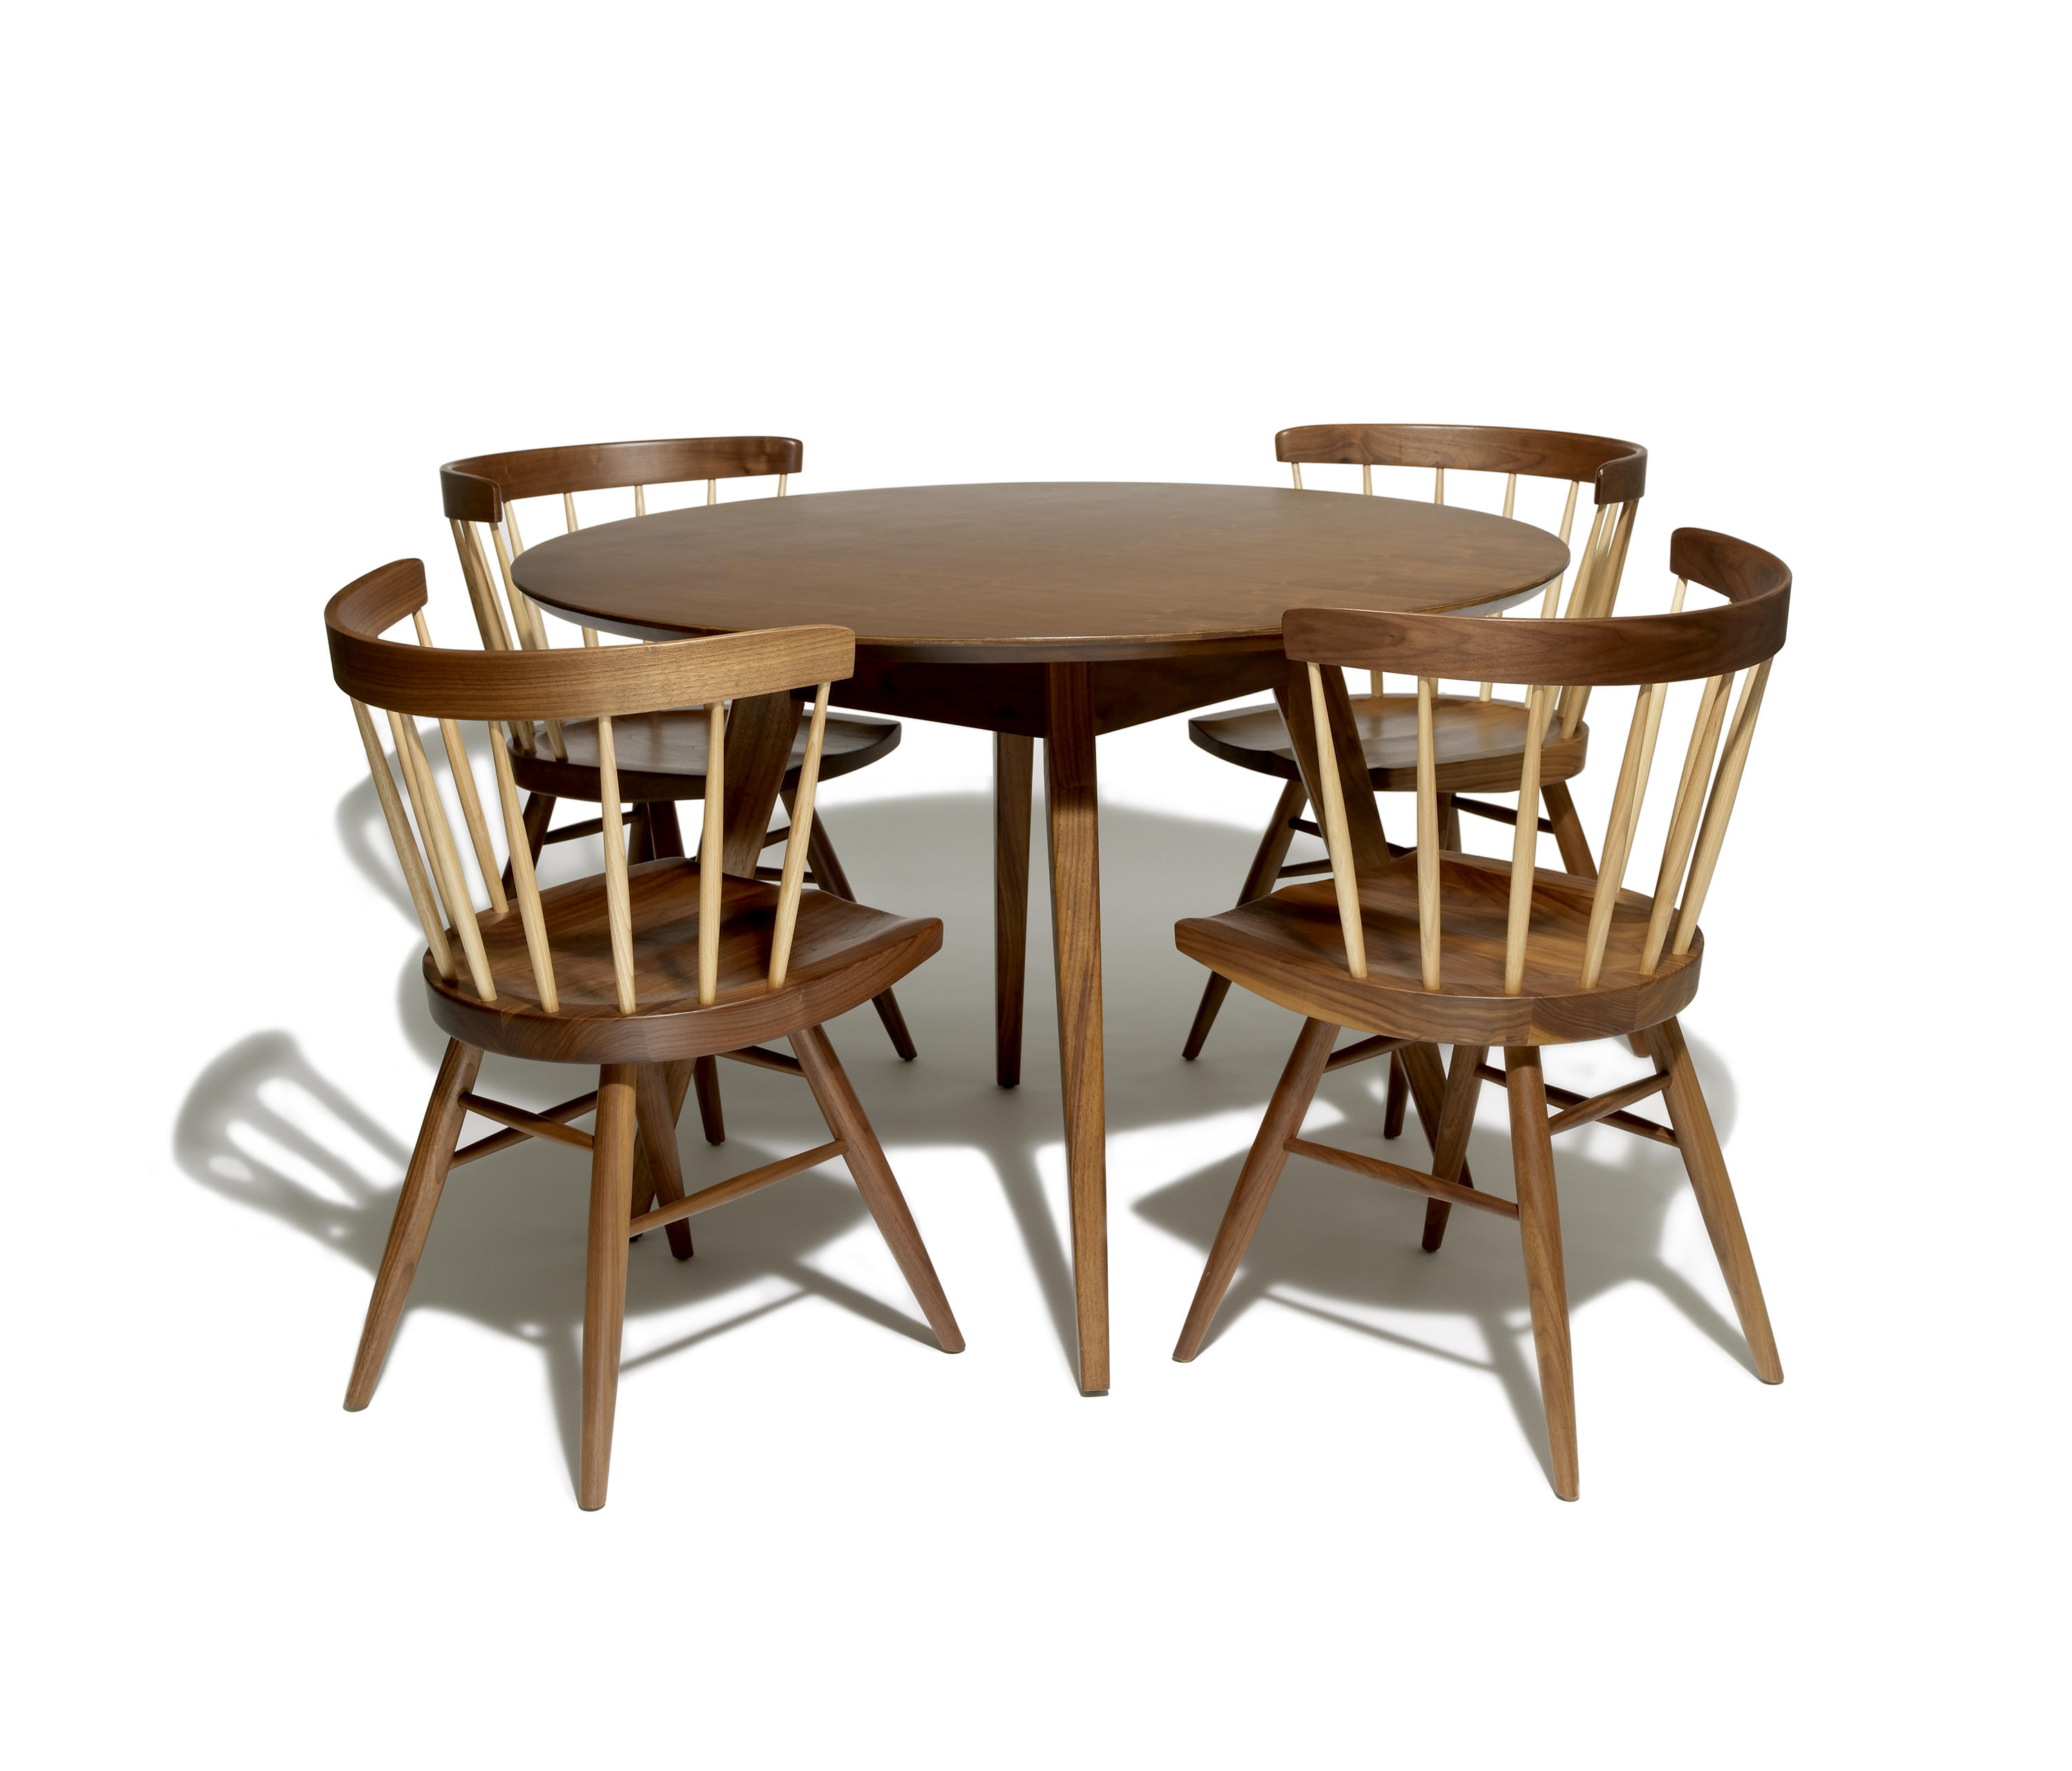 NAKASHIMA STRAIGHT CHAIR Restaurant chairs from Knoll